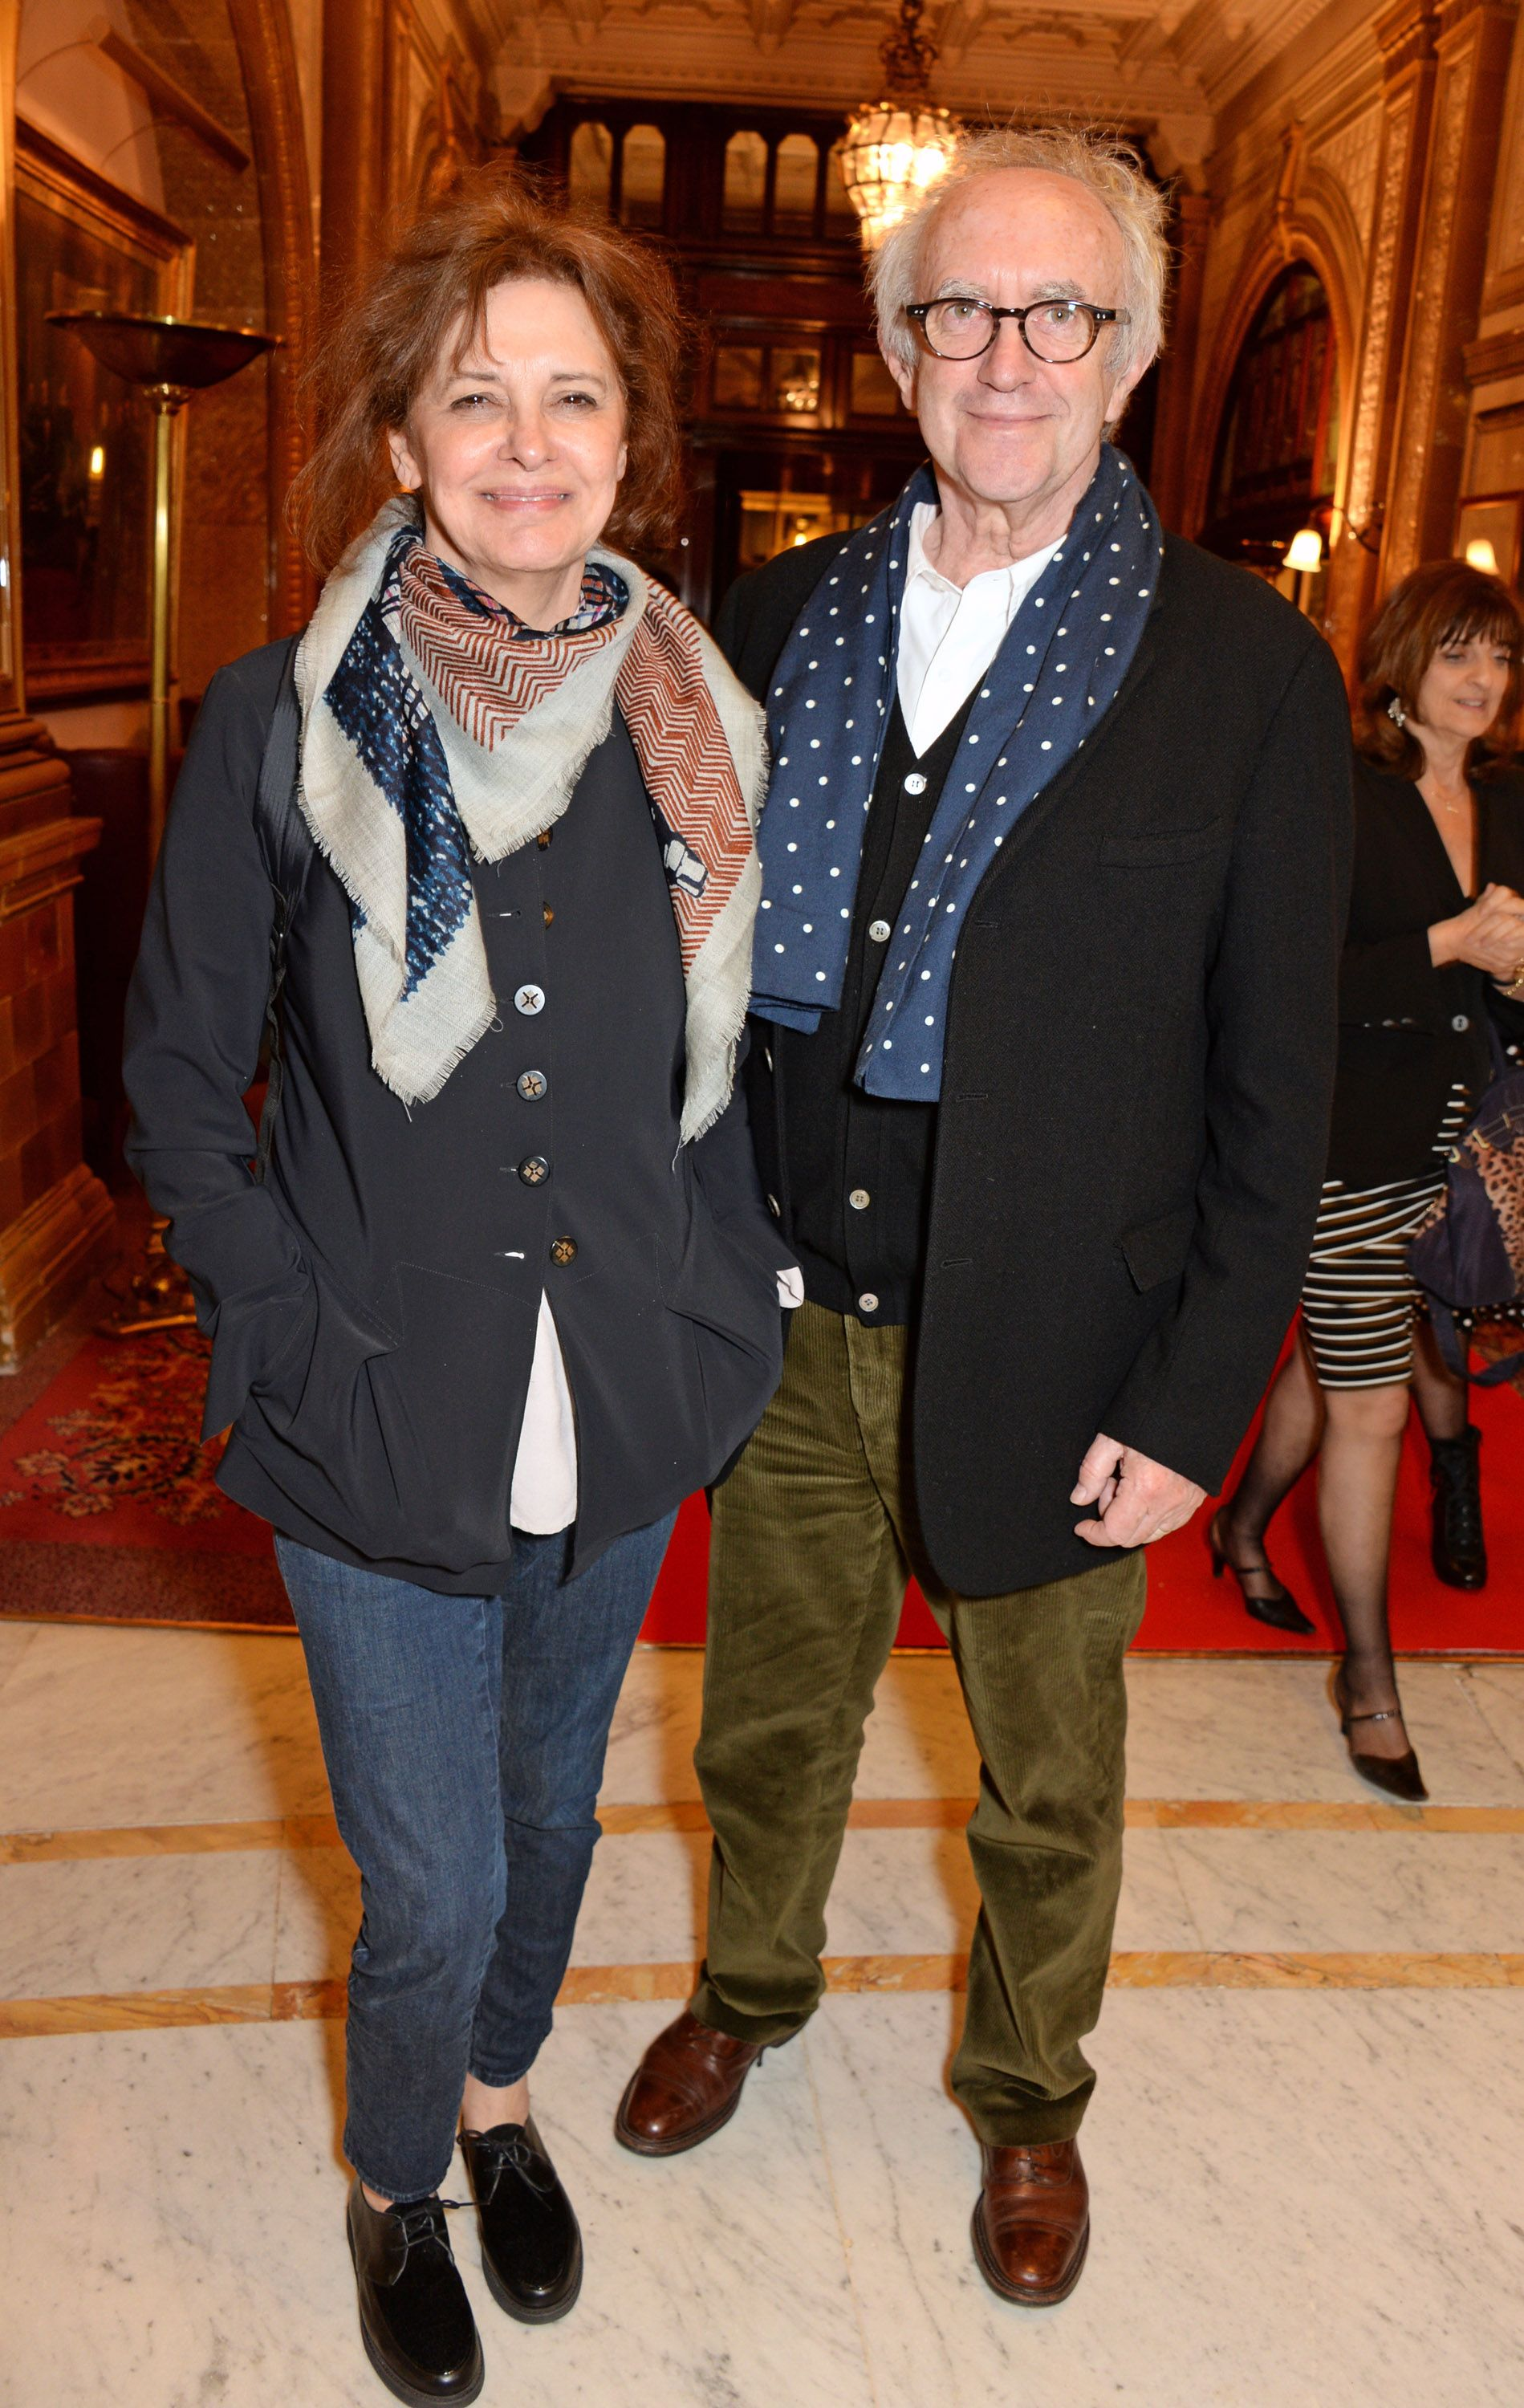 Jonathan Pryce (The High Sparrow) and Kate Fahy The couple met in 1972 but waited 43 years to tie the knot.